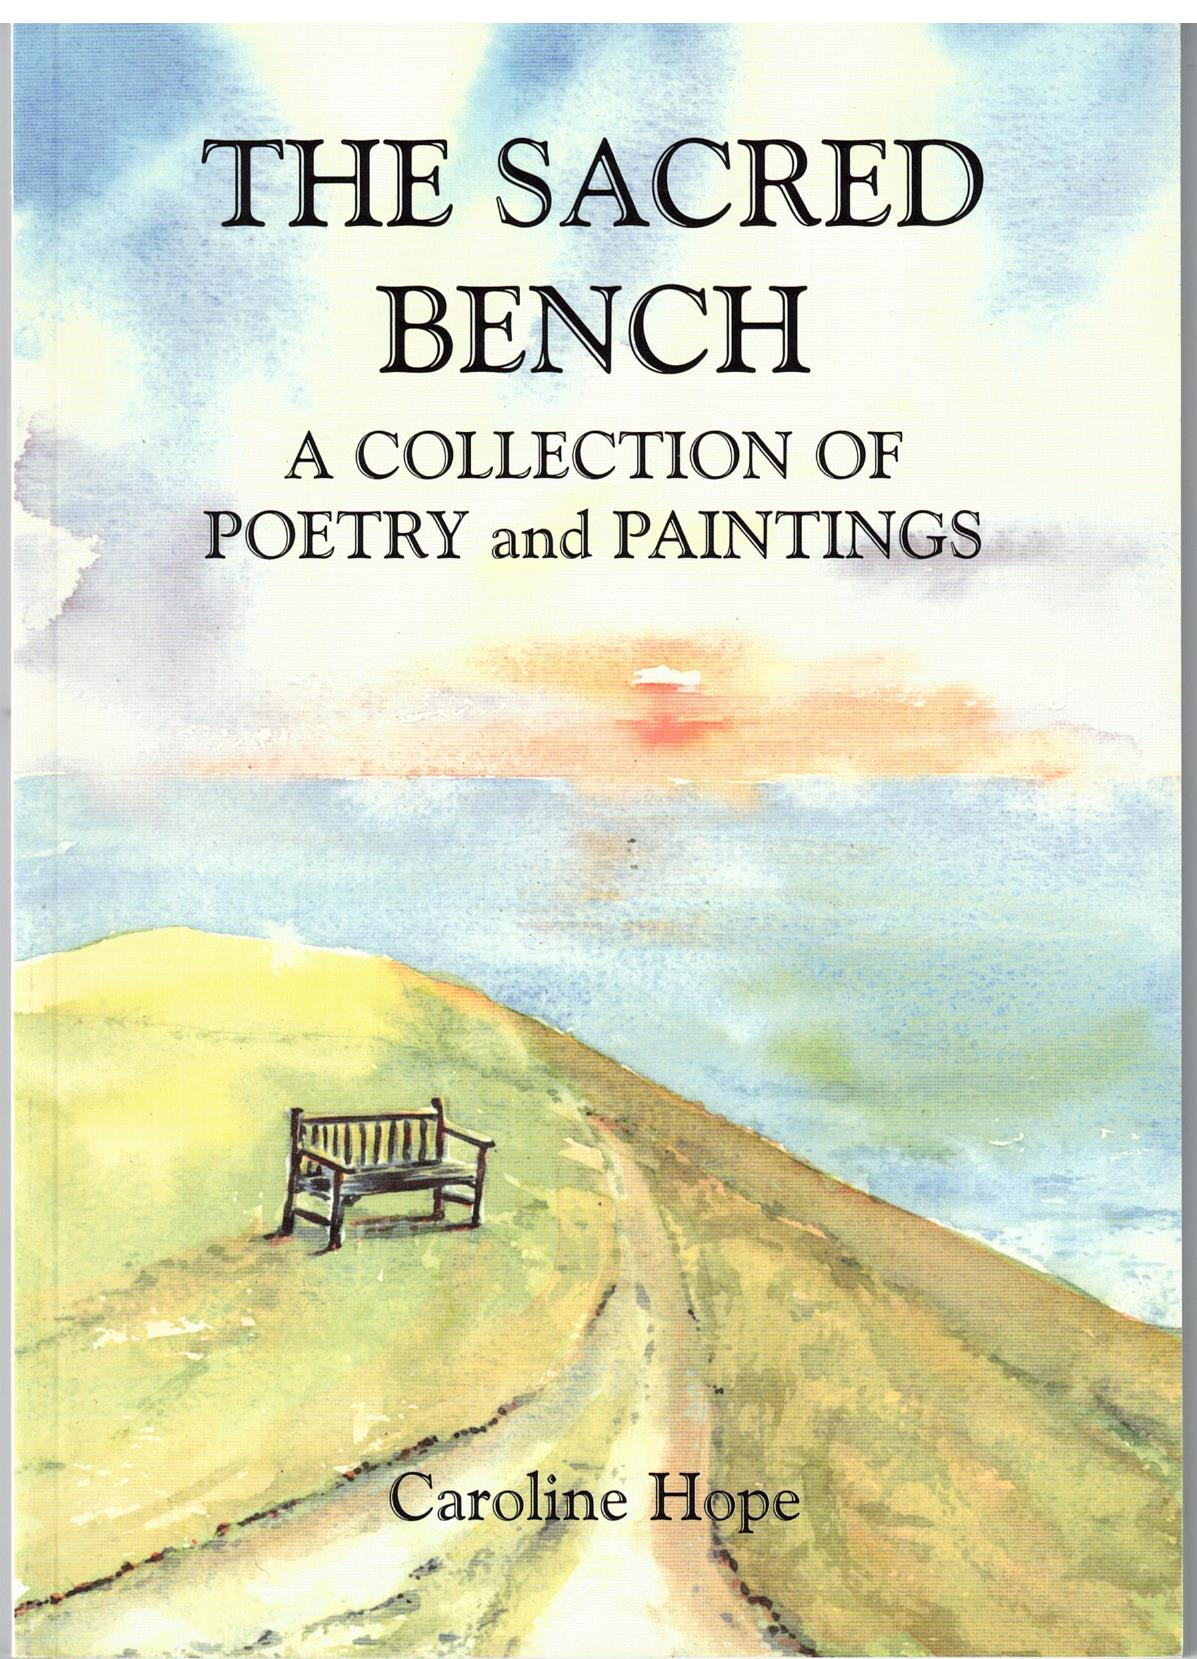 Image for The Sacred Bench - a collection of poetry and paintings